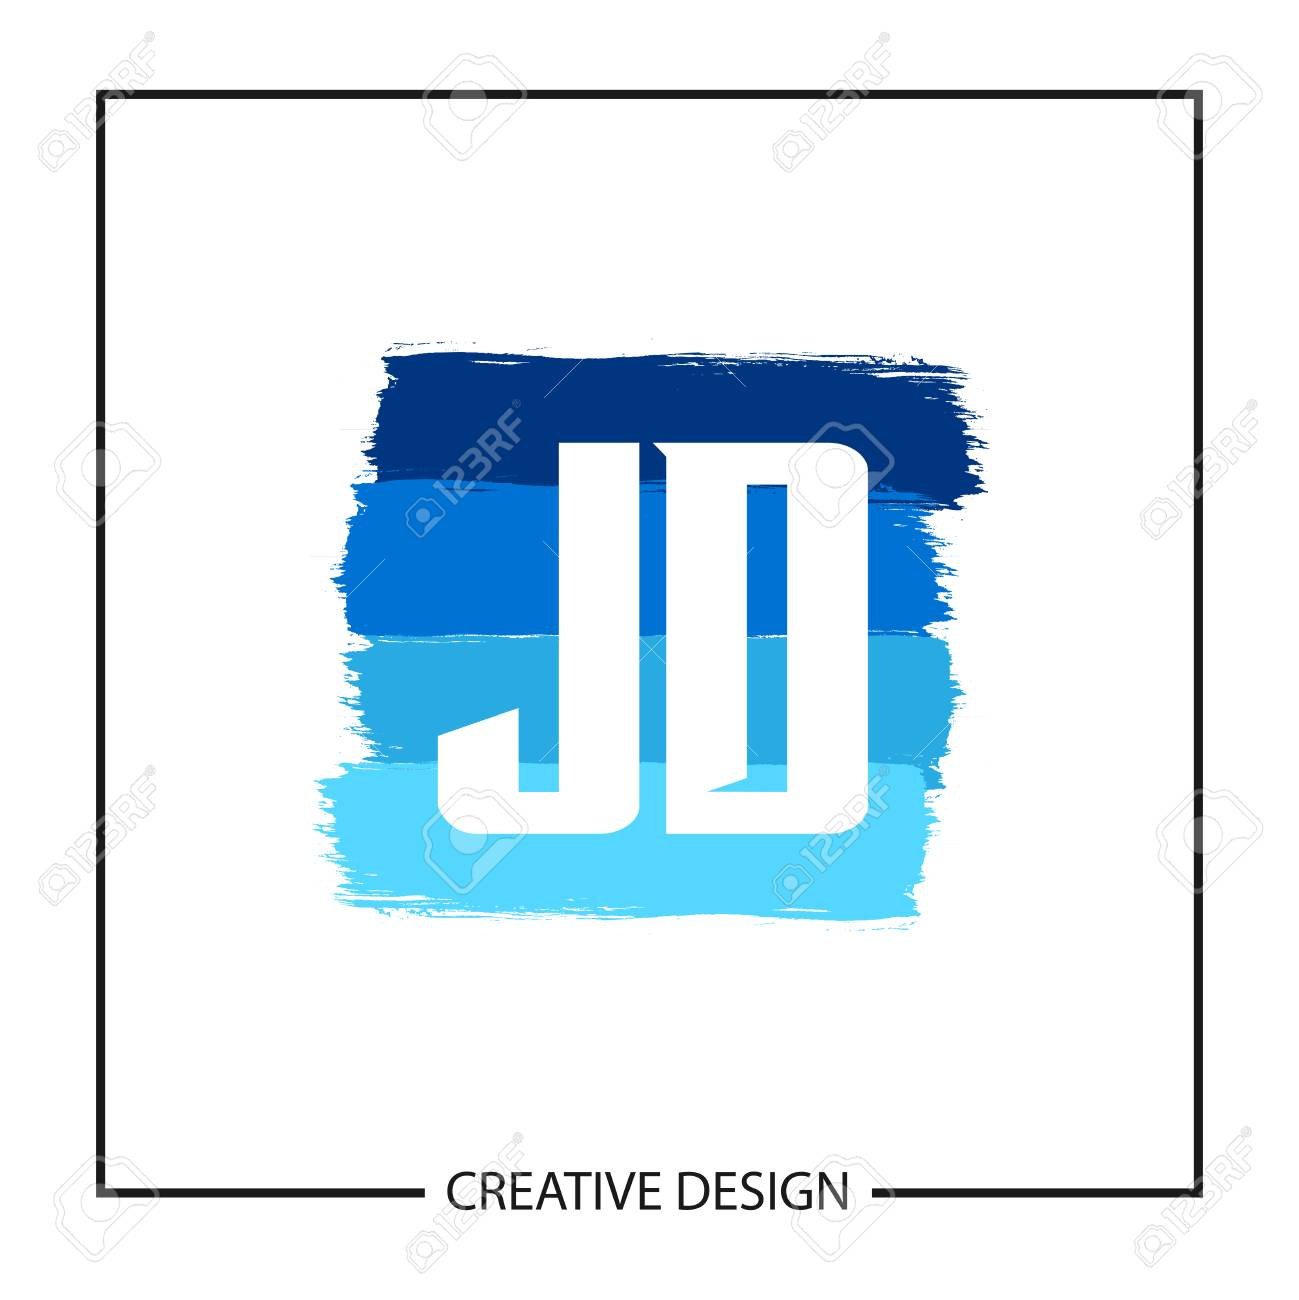 initial letter jd logo template design royalty free cliparts vectors and stock illustration image 112710673 123rf com